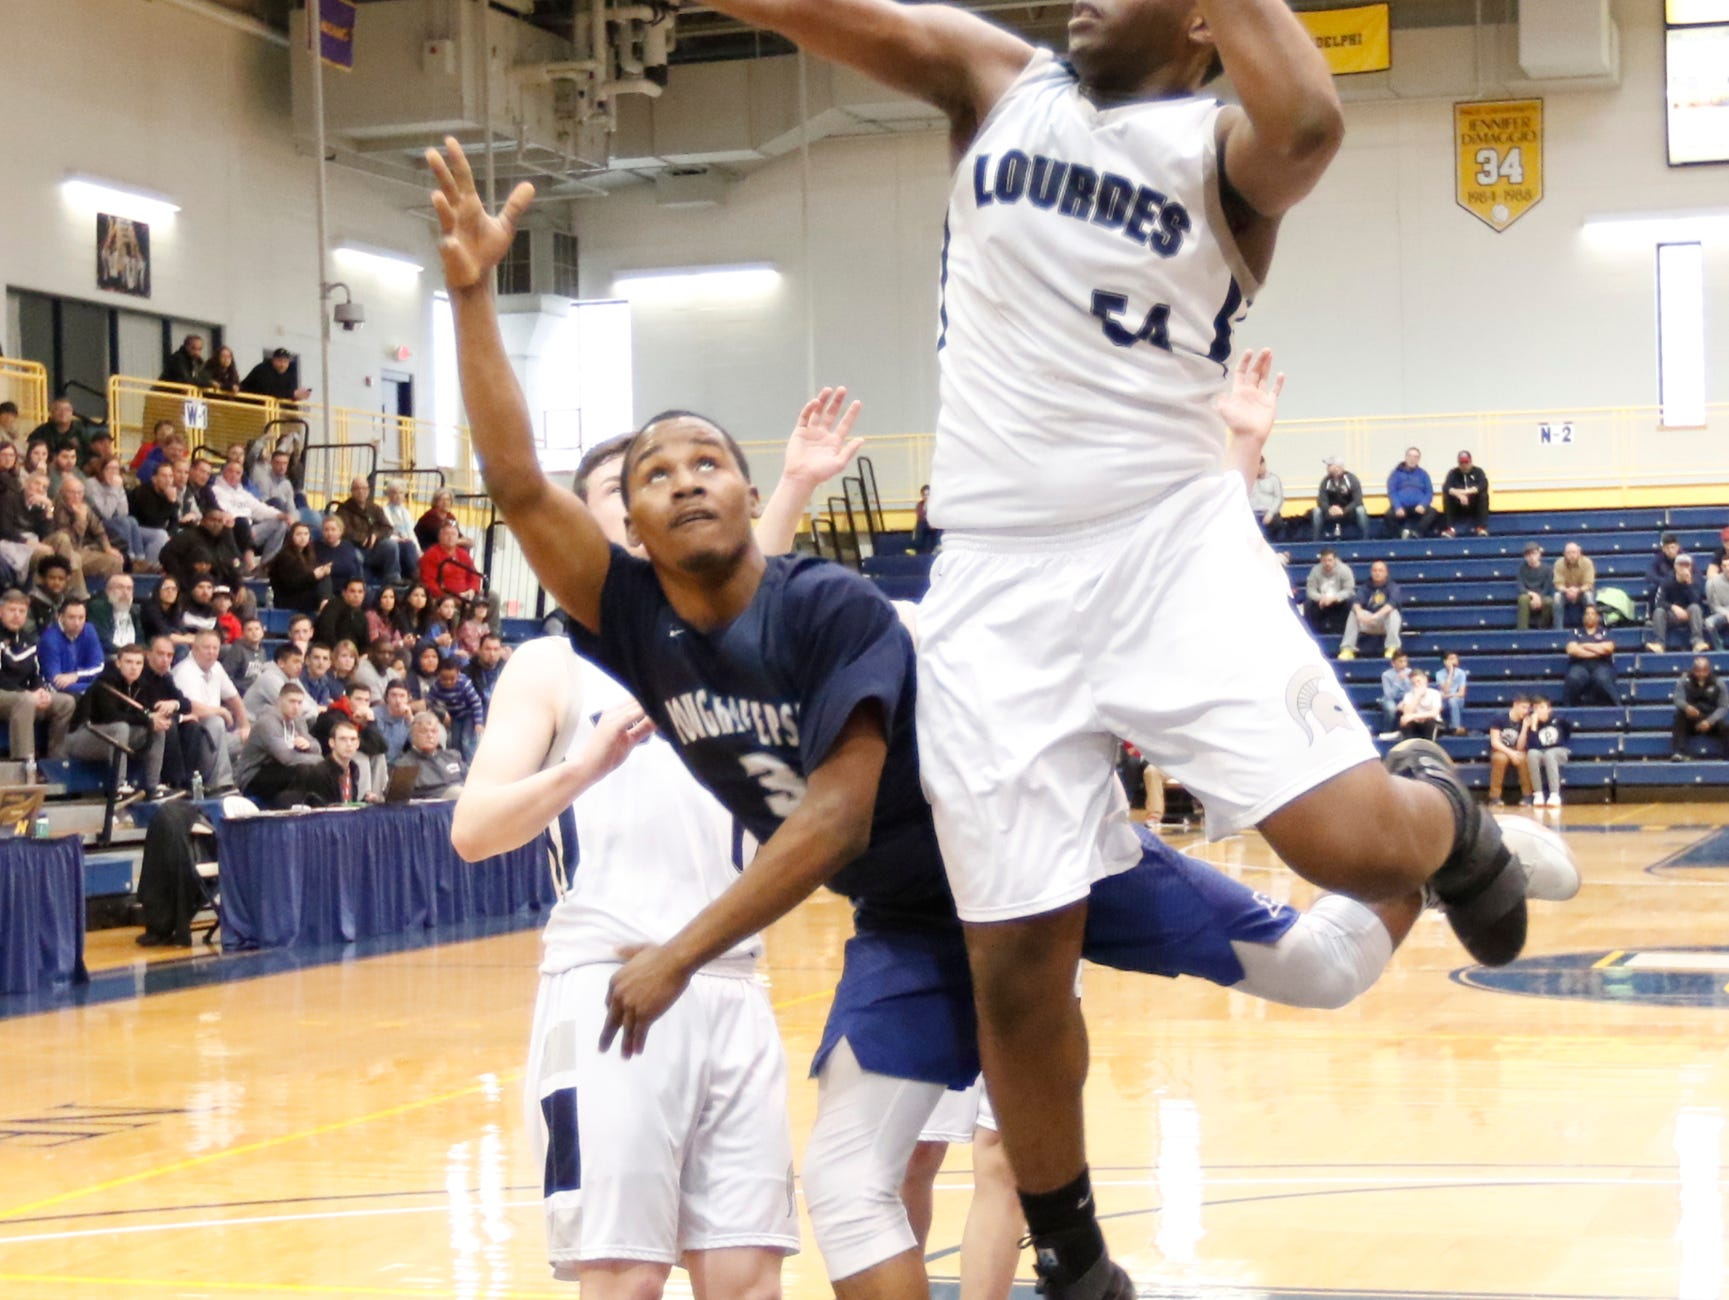 Our Lady of Lourdes' James Anozie (54) blocks a shot by Poughkeepsie's Mo'Quez Dickens (3) during the boys NYSPHSAA Class A regional final at Pace University's Goldstein Fitness Center in Pleasantville on Saturday, March 11, 2017.